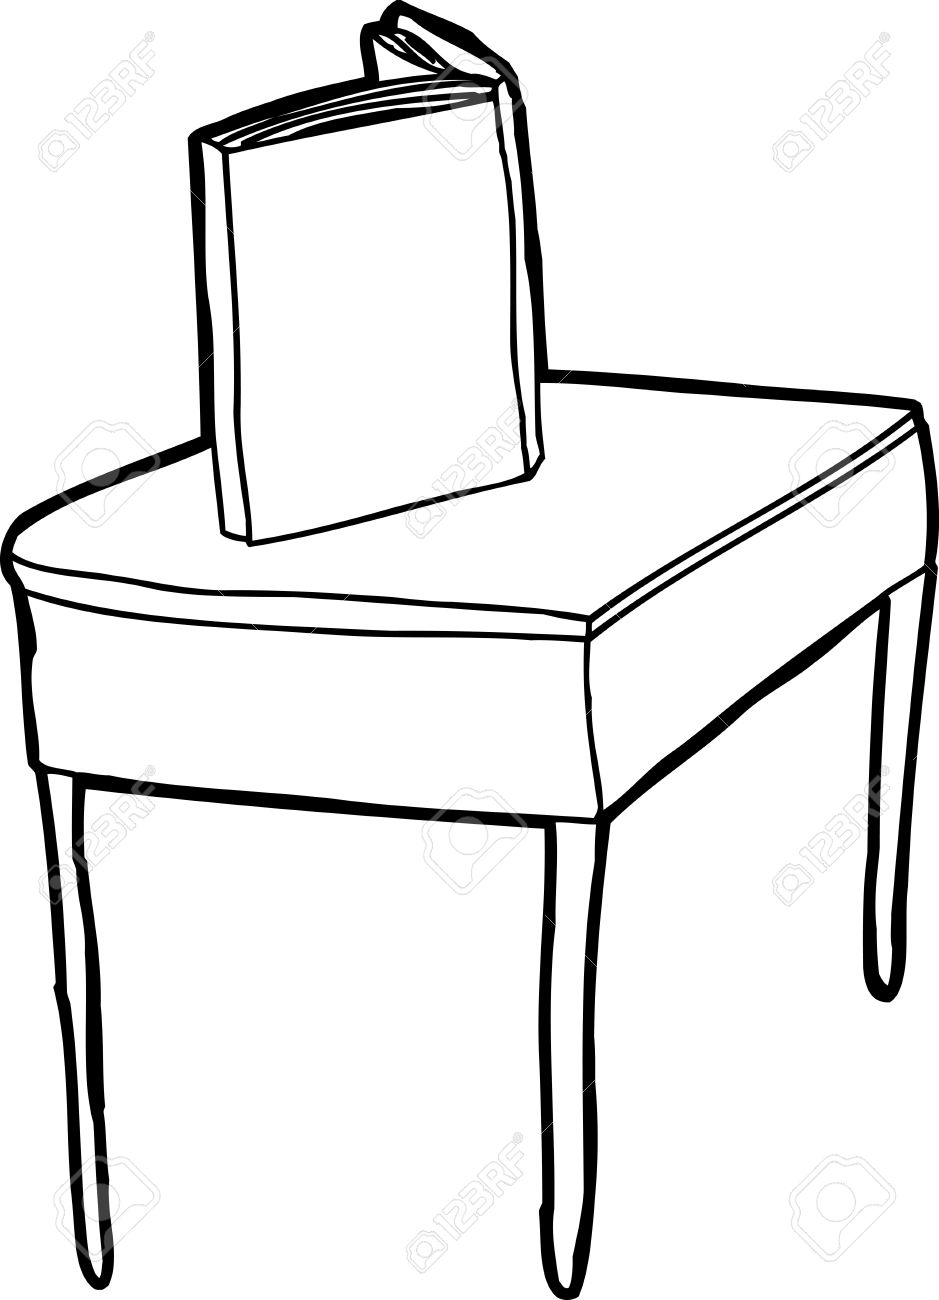 Book On A Table Clipart.